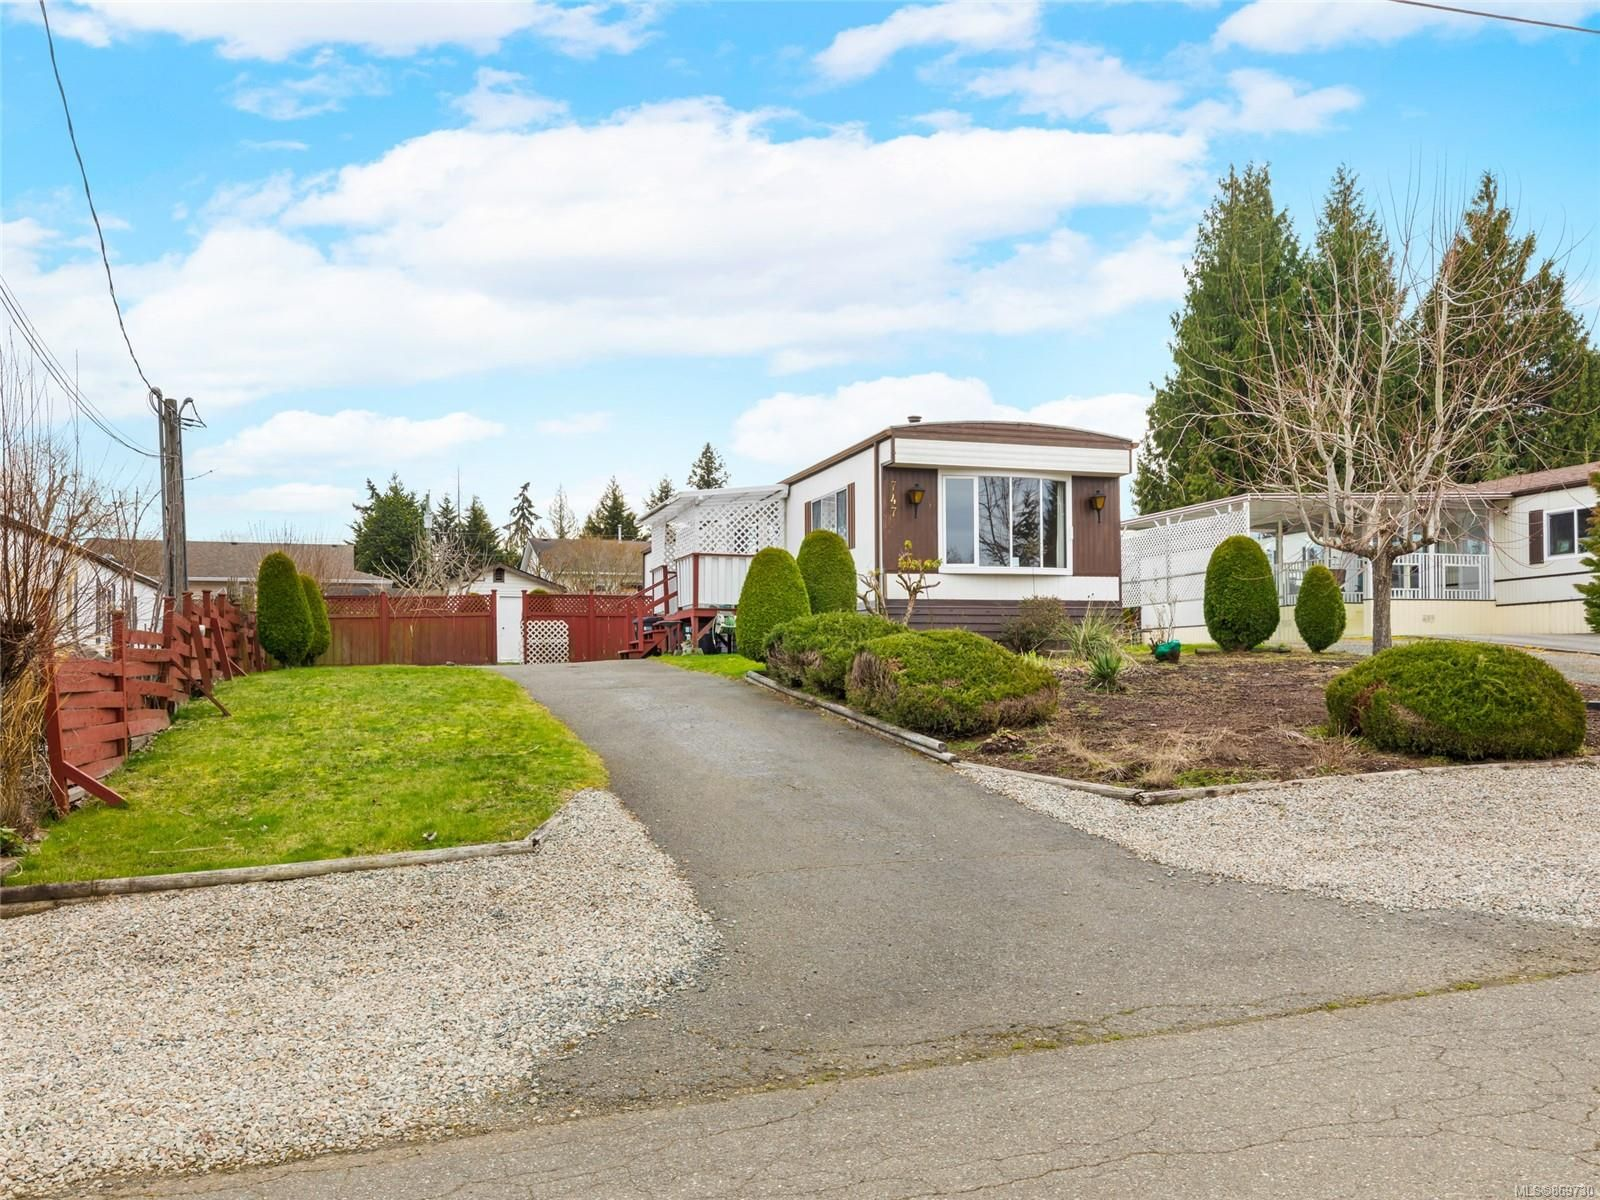 Main Photo: 747 Kasba Cir in : PQ French Creek Manufactured Home for sale (Parksville/Qualicum)  : MLS®# 869730